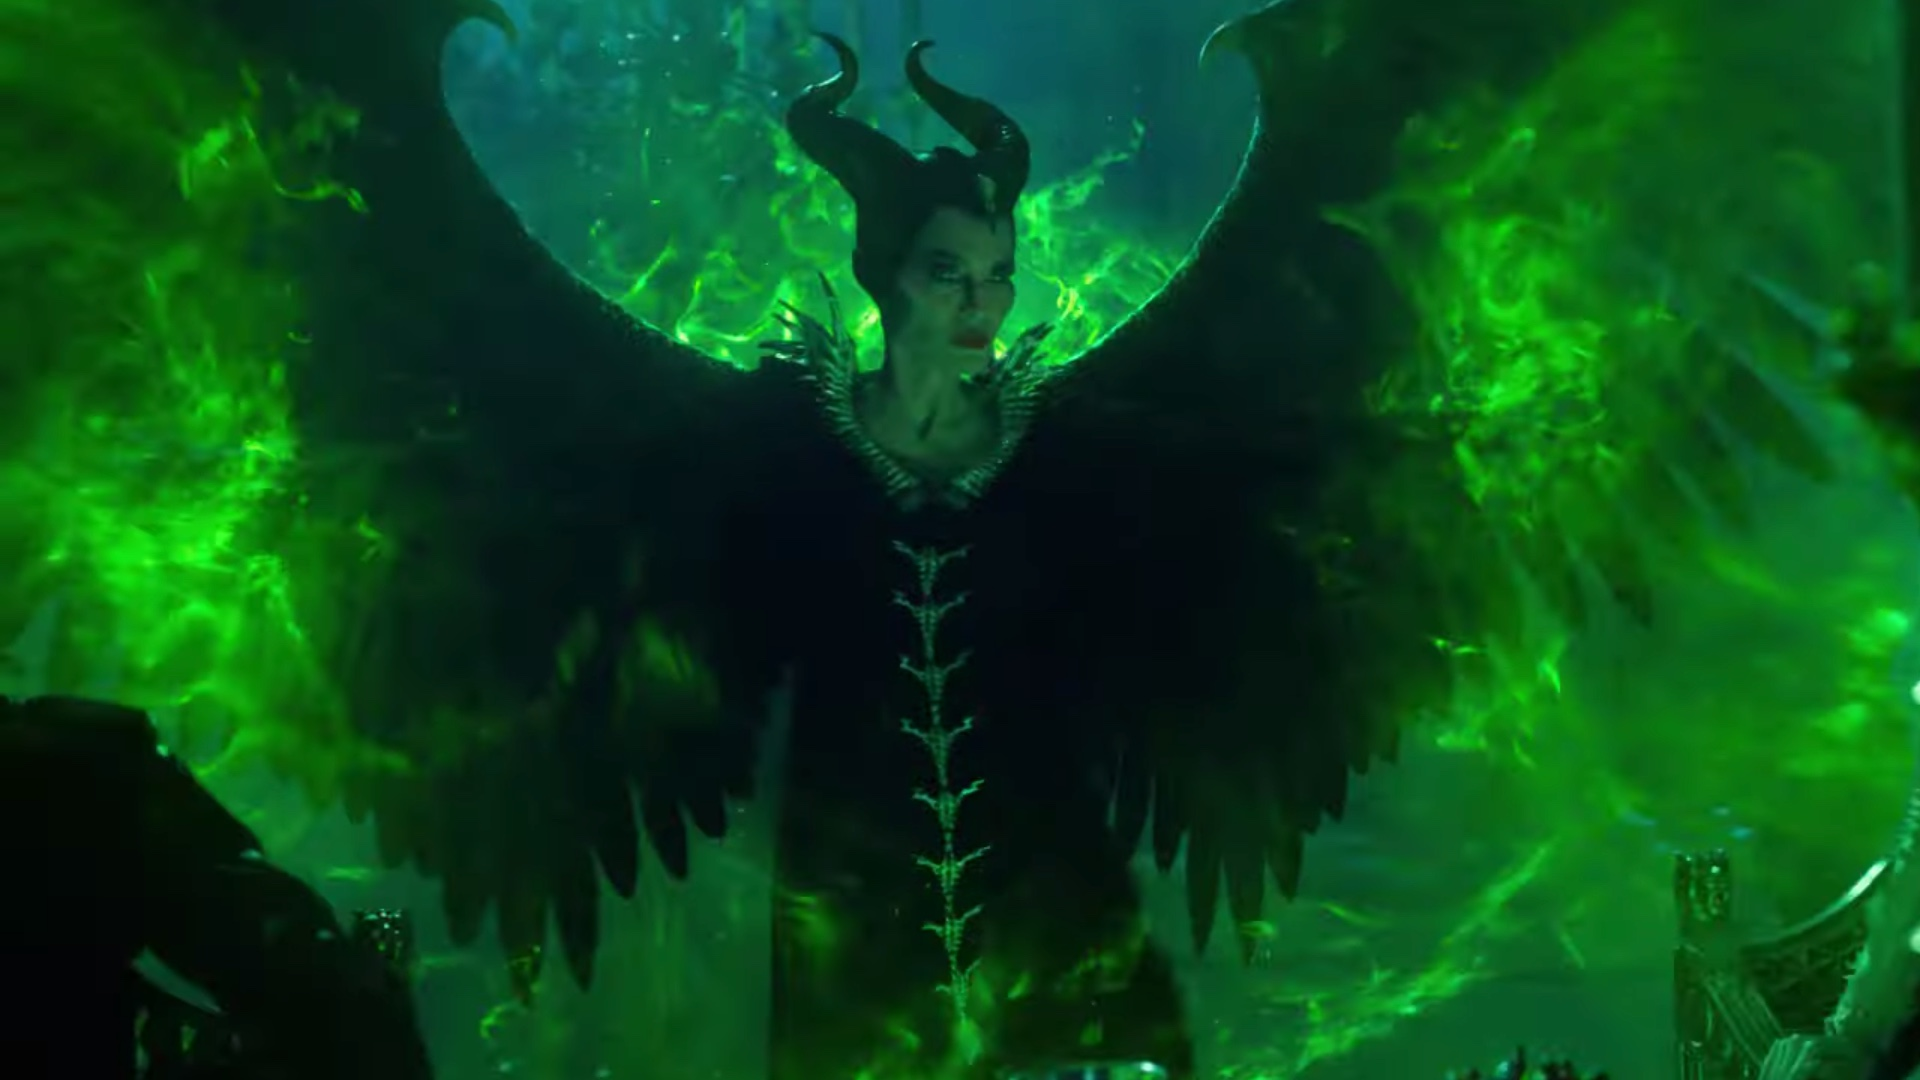 angelina-jolie-goes-to-war-with-micheal-pfeiffer-in-nee-trailer-for-maleficent-mistress-of-evil-social.jpg